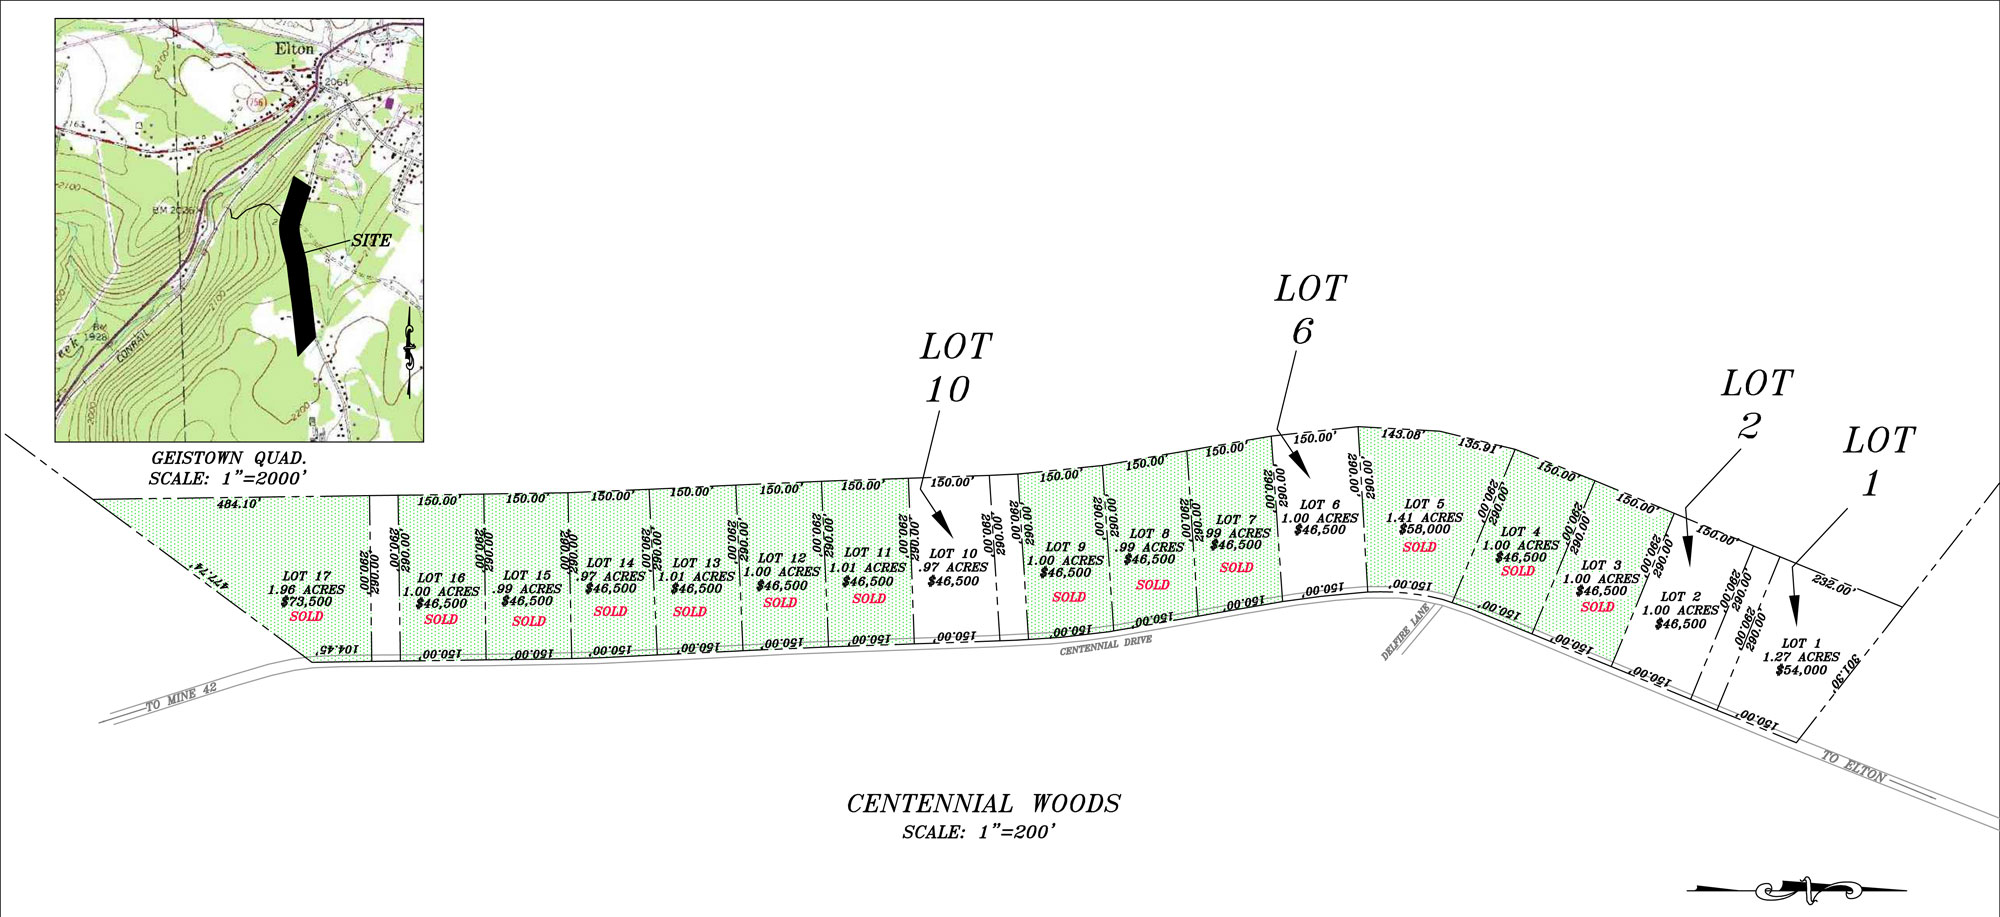 Centennial Woods Subdivision Lot No 1 Berwind Natural Resources